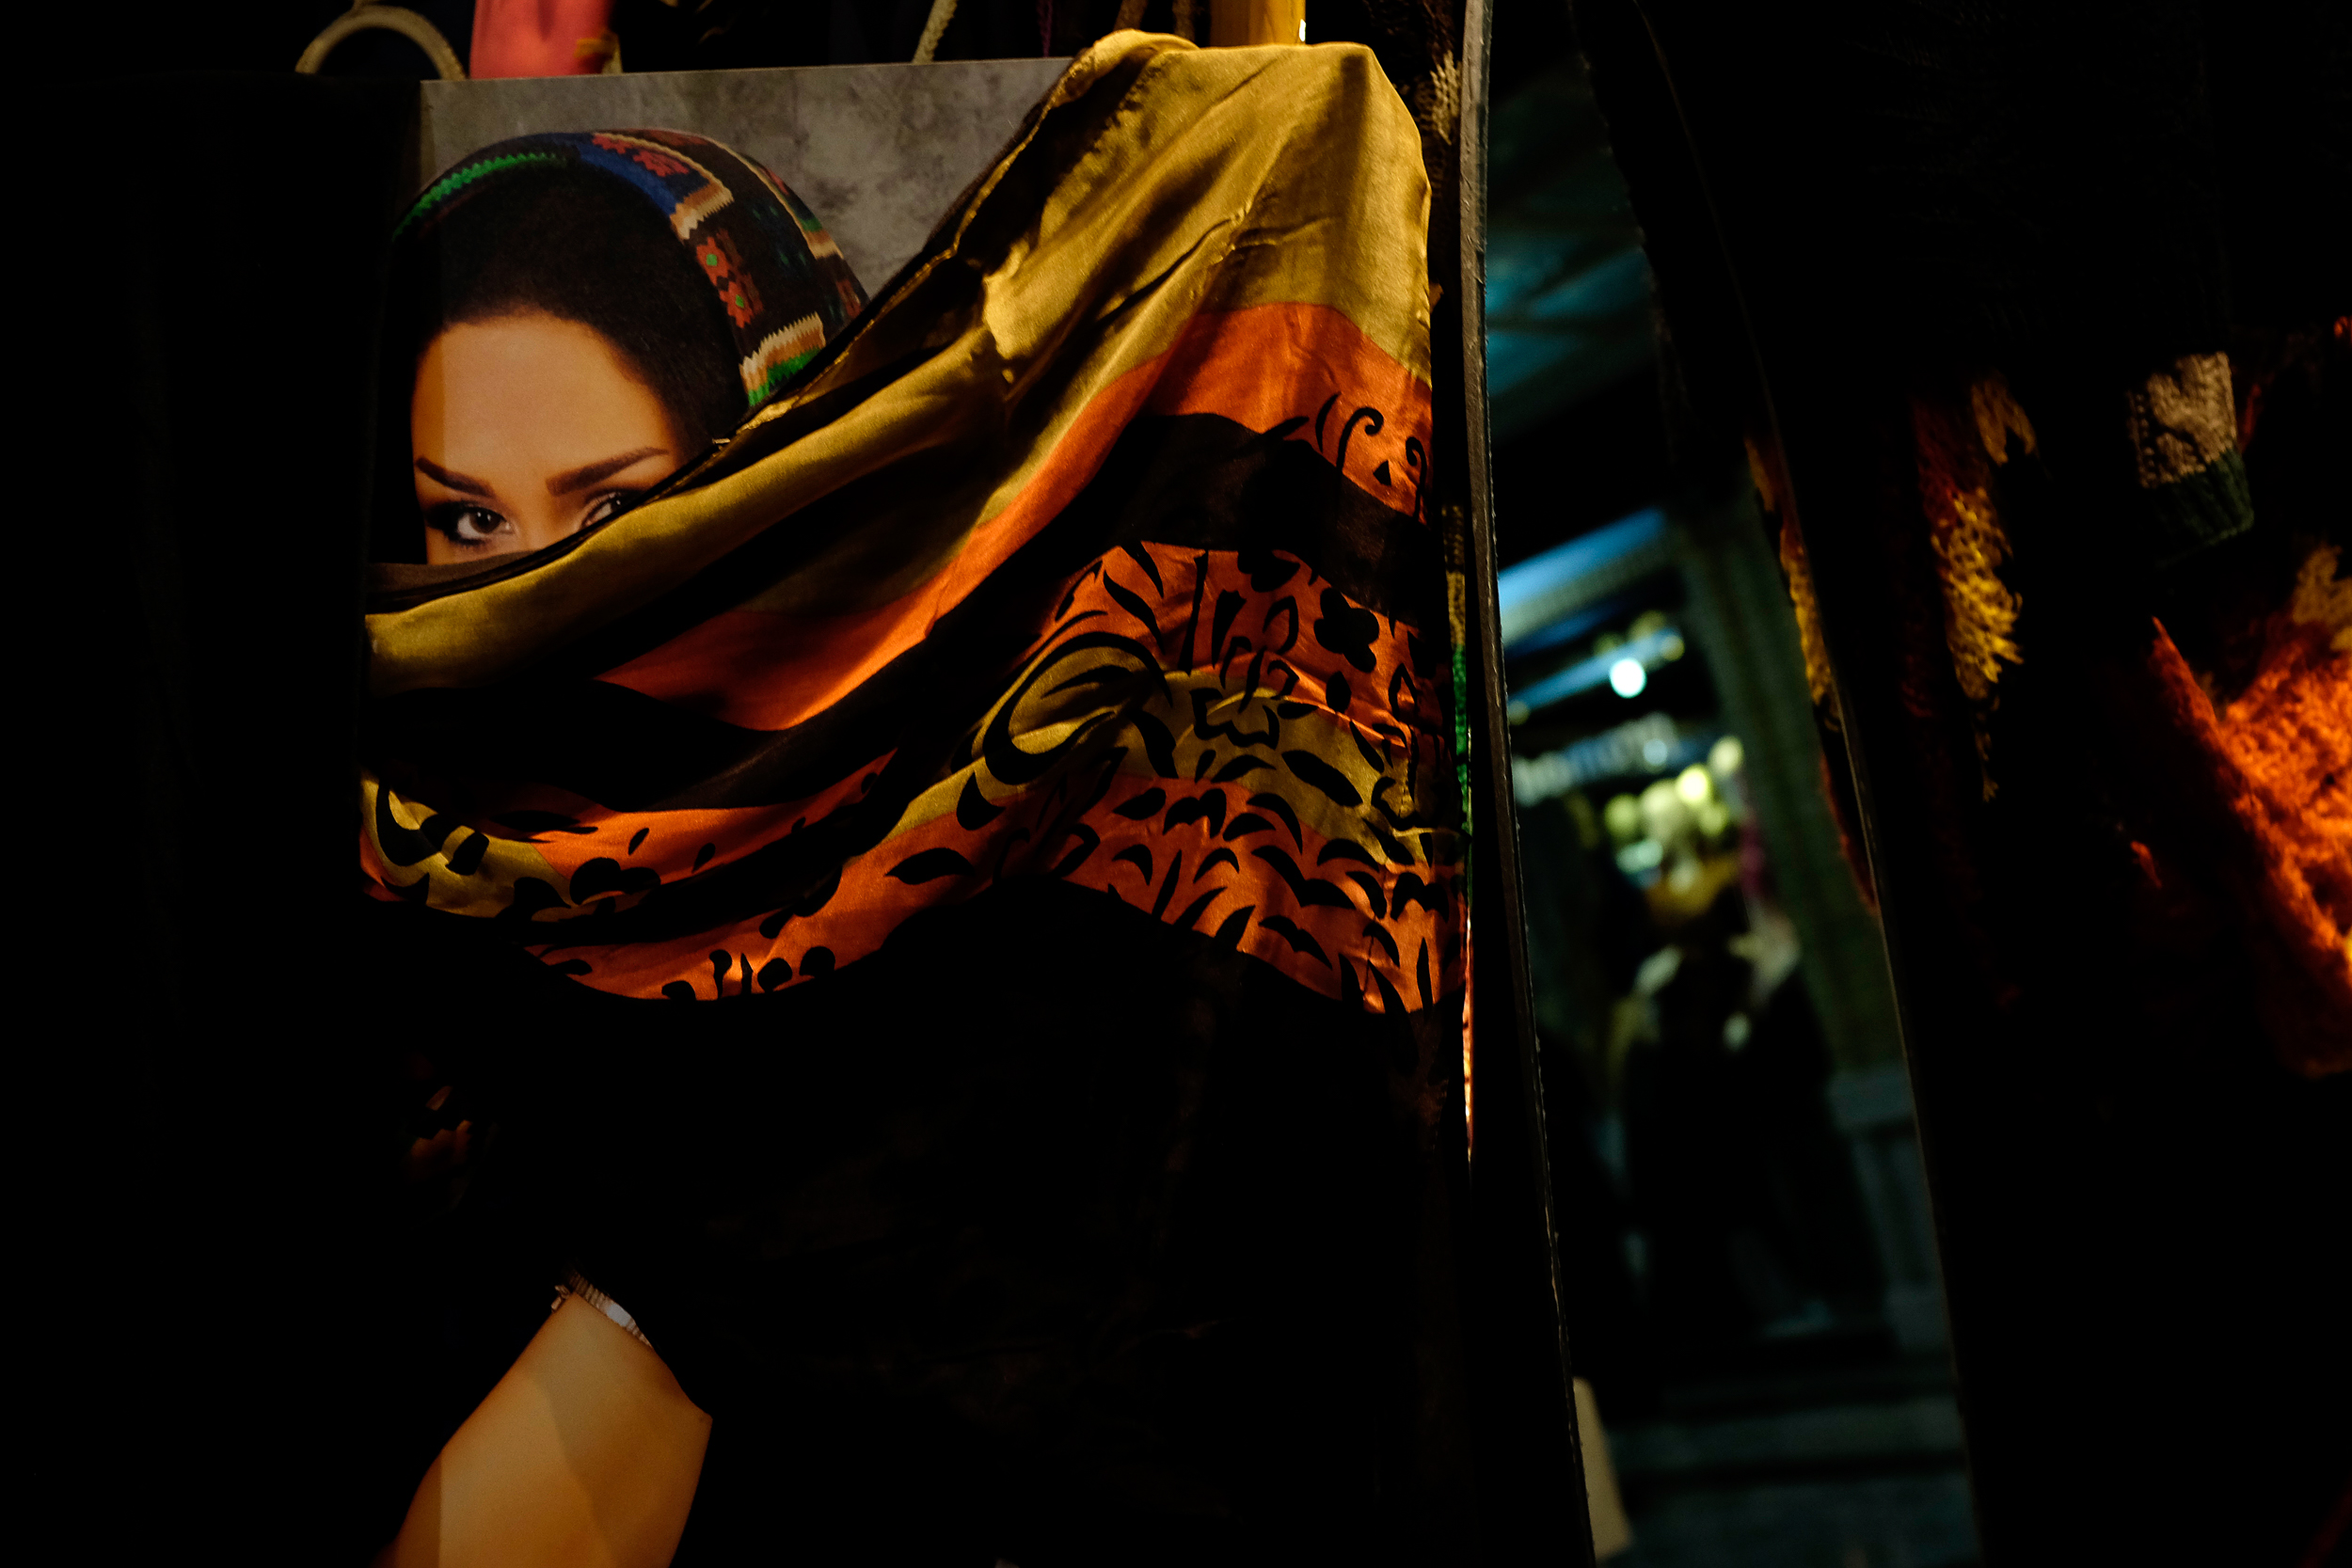 A print of a woman is covered by a headscarf in a bazaar in Central Tehran.